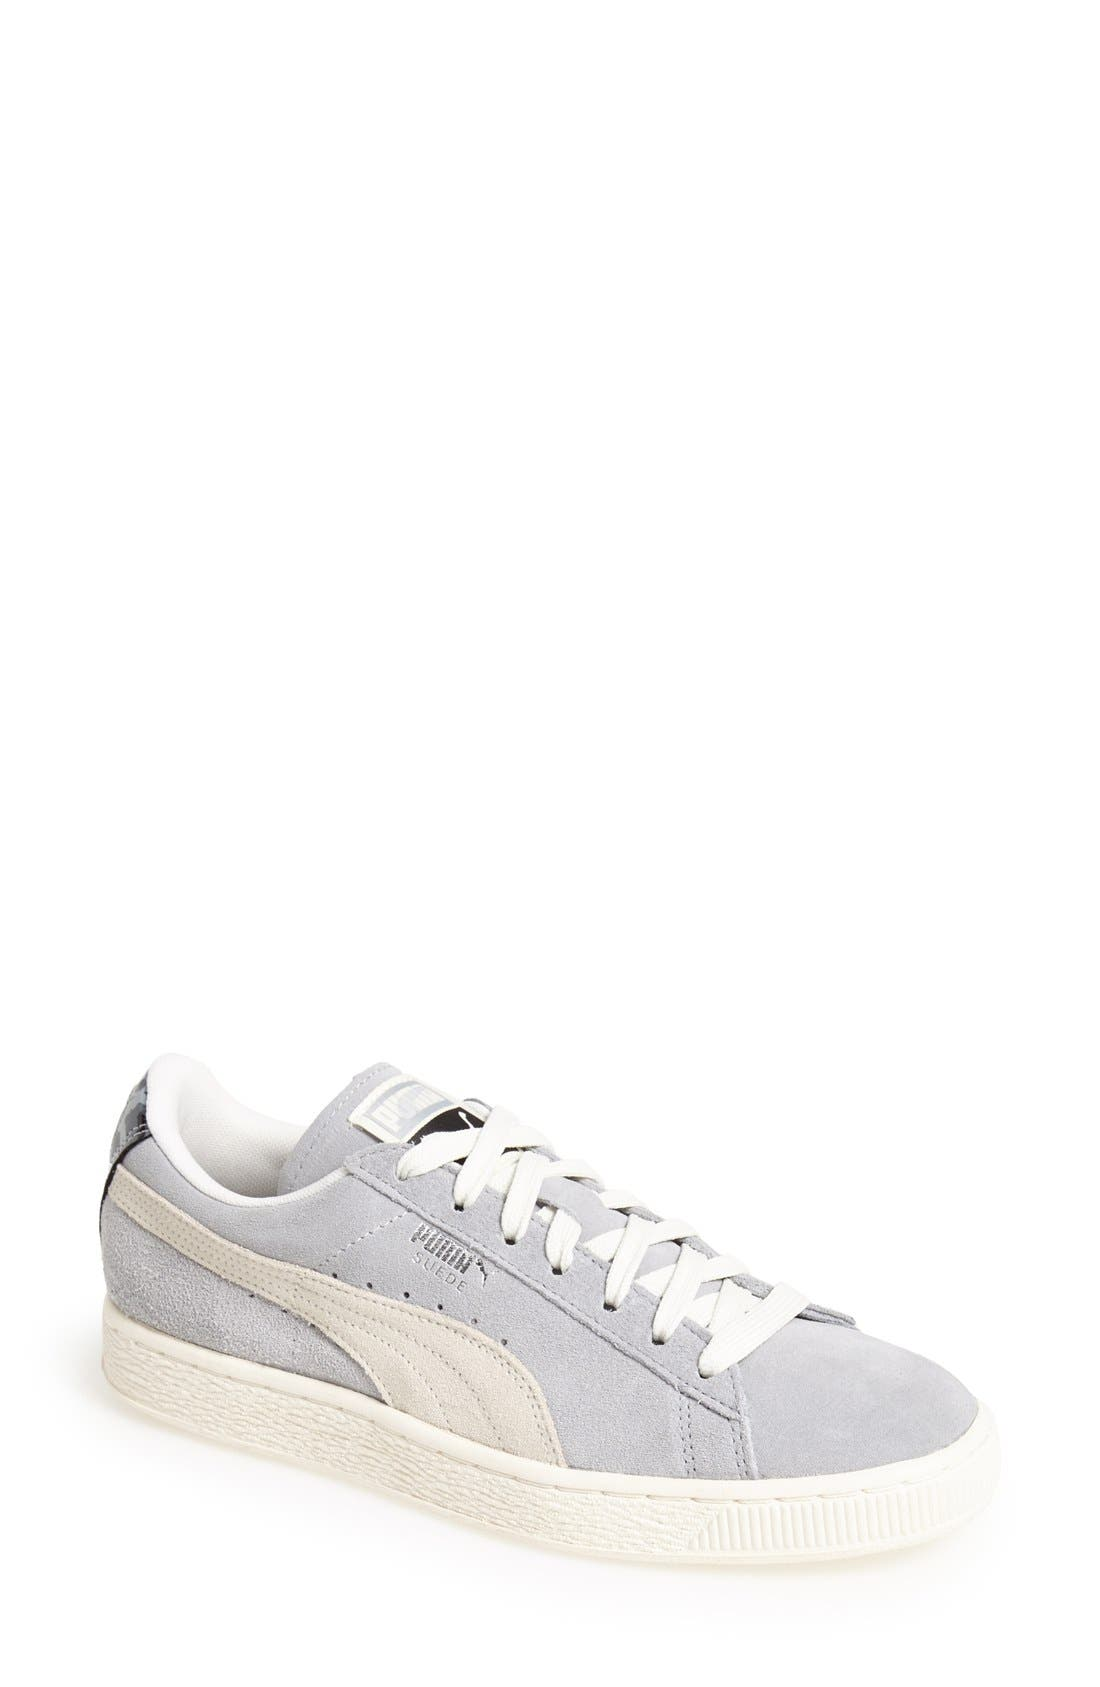 Alternate Image 1 Selected - PUMA 'Classic' Suede Sneaker (Women)